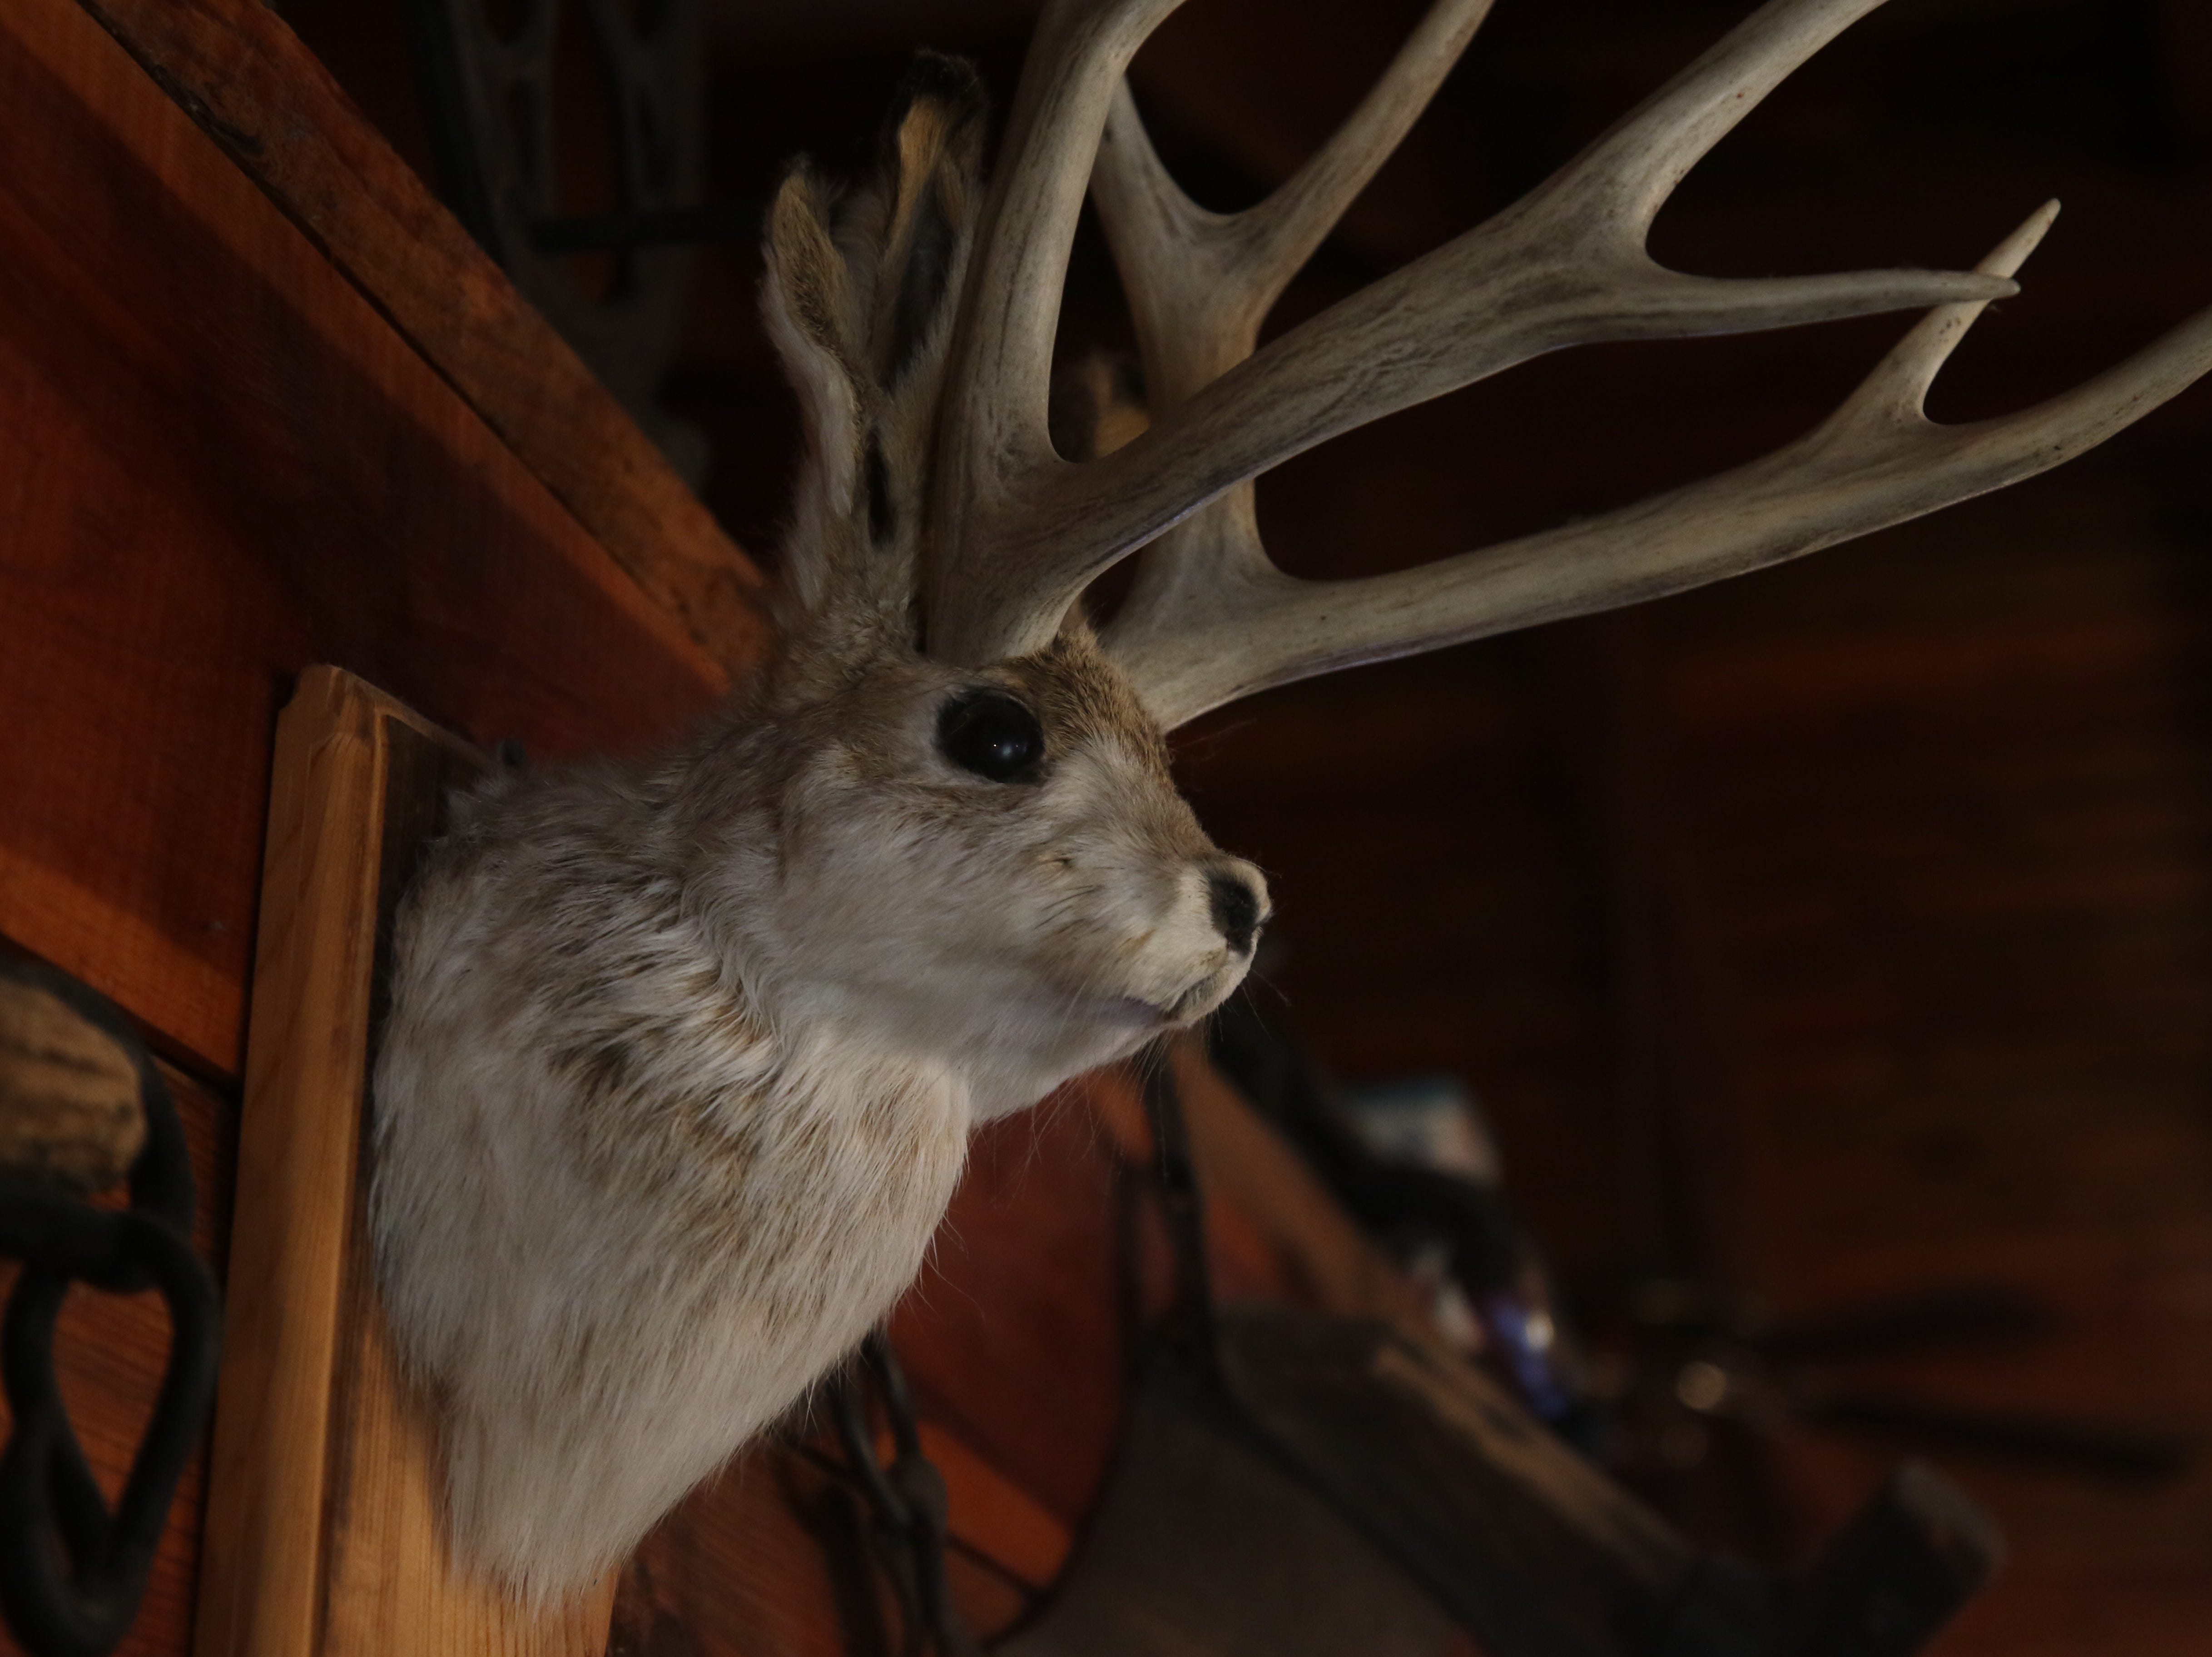 A jackalope mounted on the wall, Feb. 23 at Red Chimney Bar-B-Q.